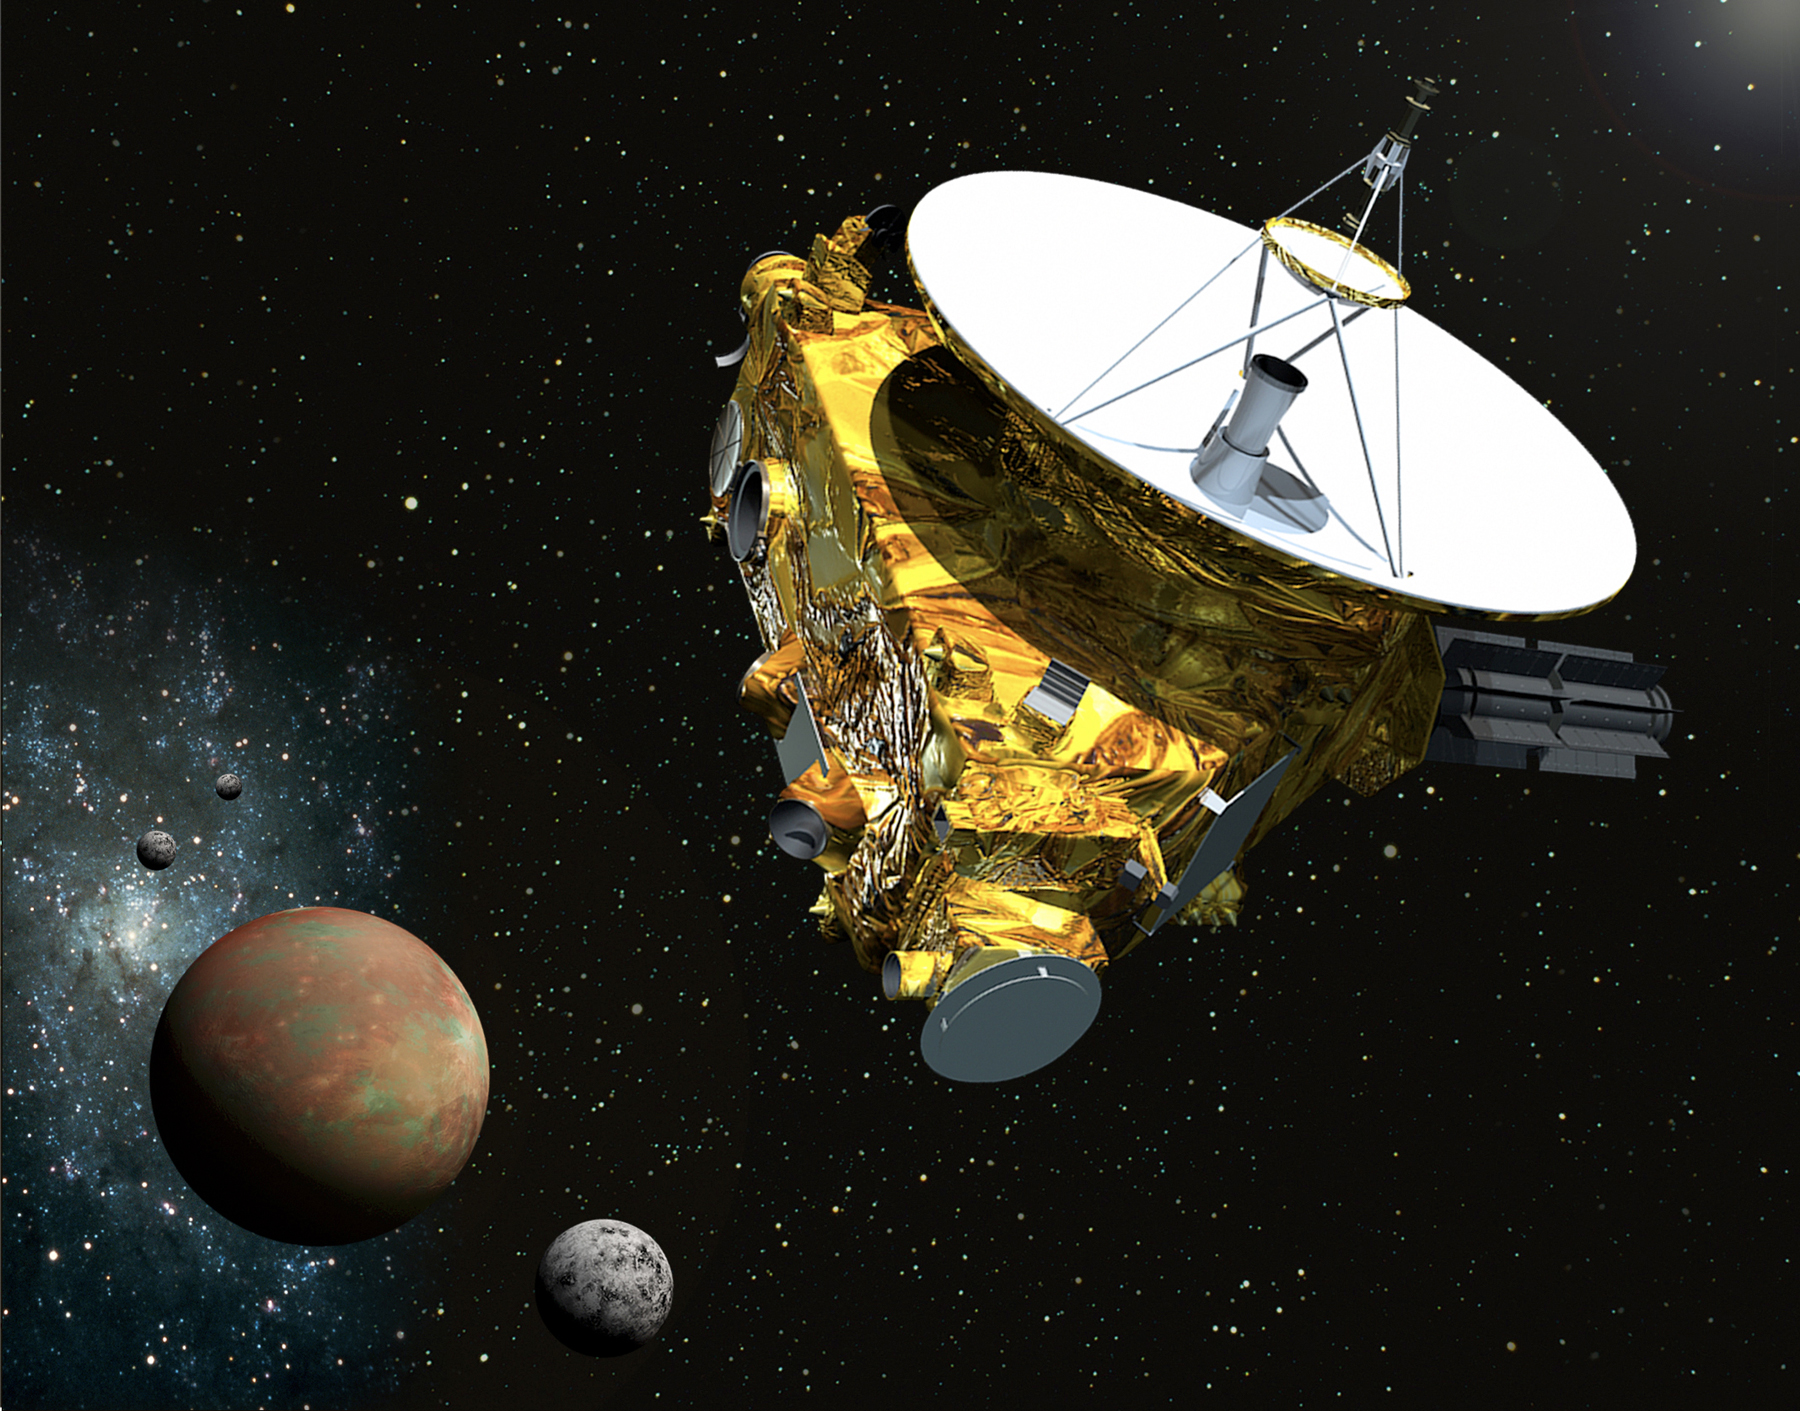 NASA's New Horizons Spacecraft Wakes Up for Pluto Encounter in 2015